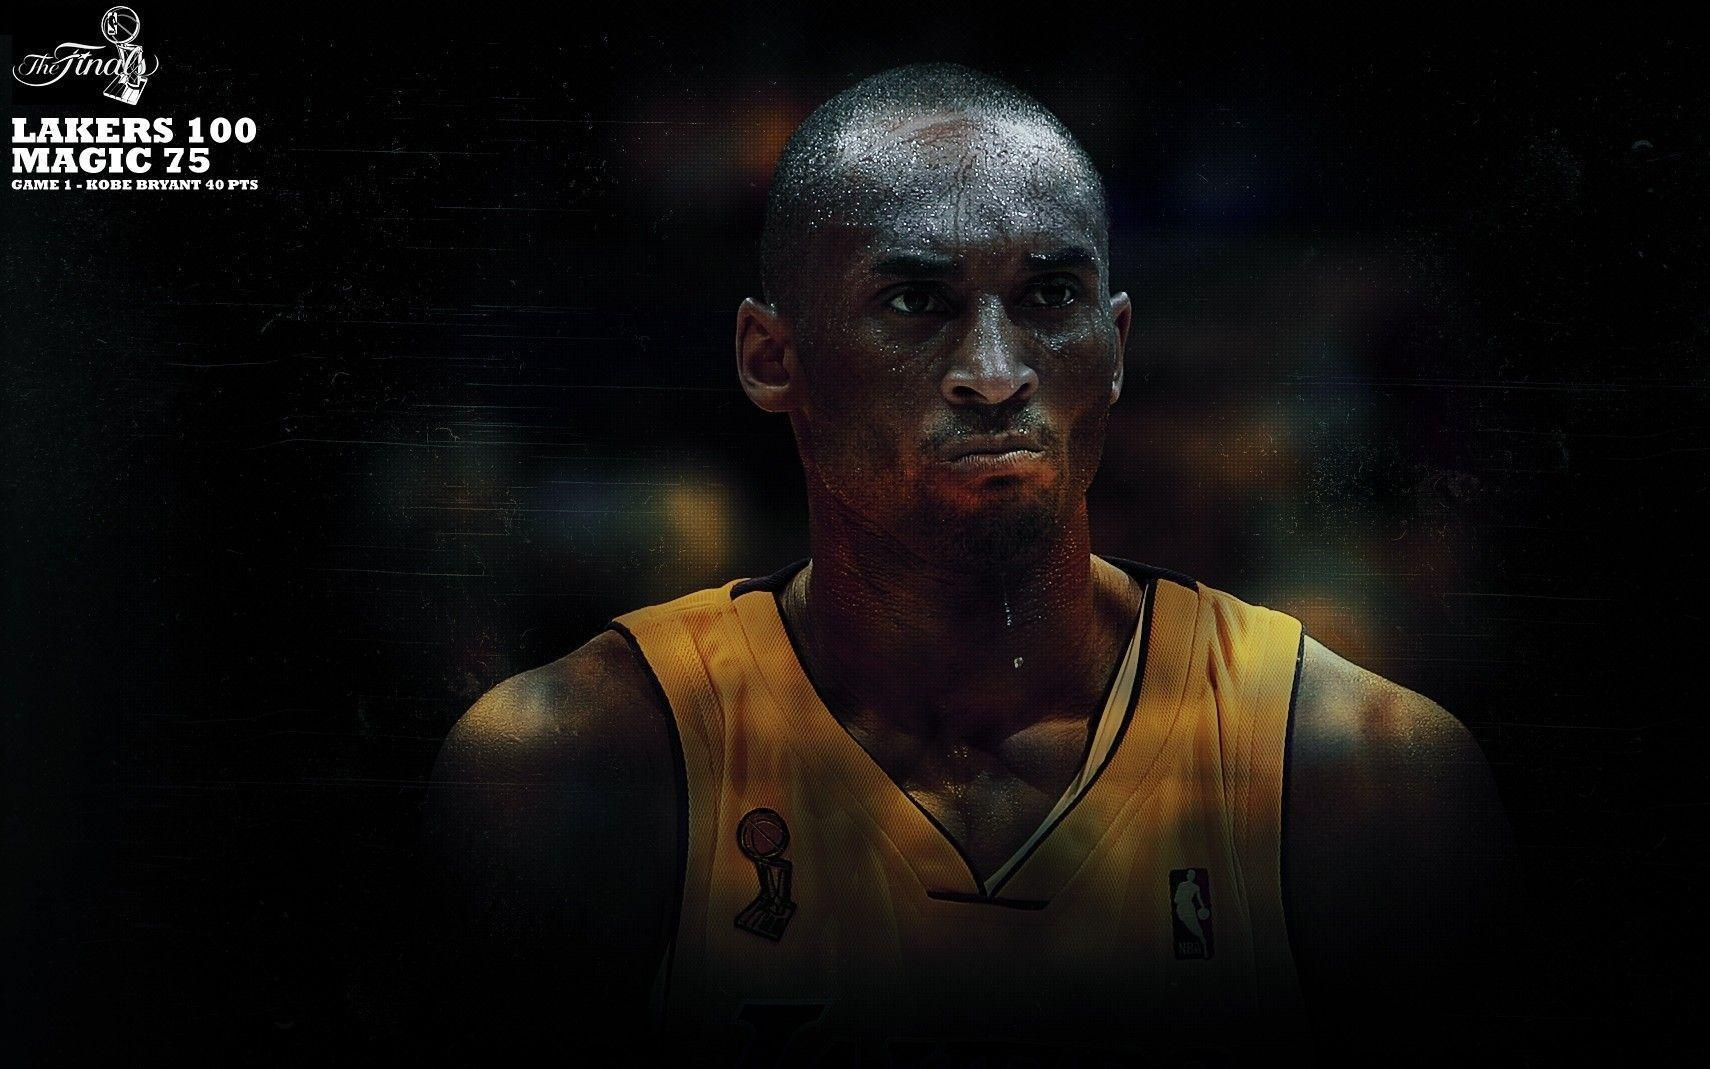 Kobe Bryant Wallpapers 71 113292 Image HD Wallpapers